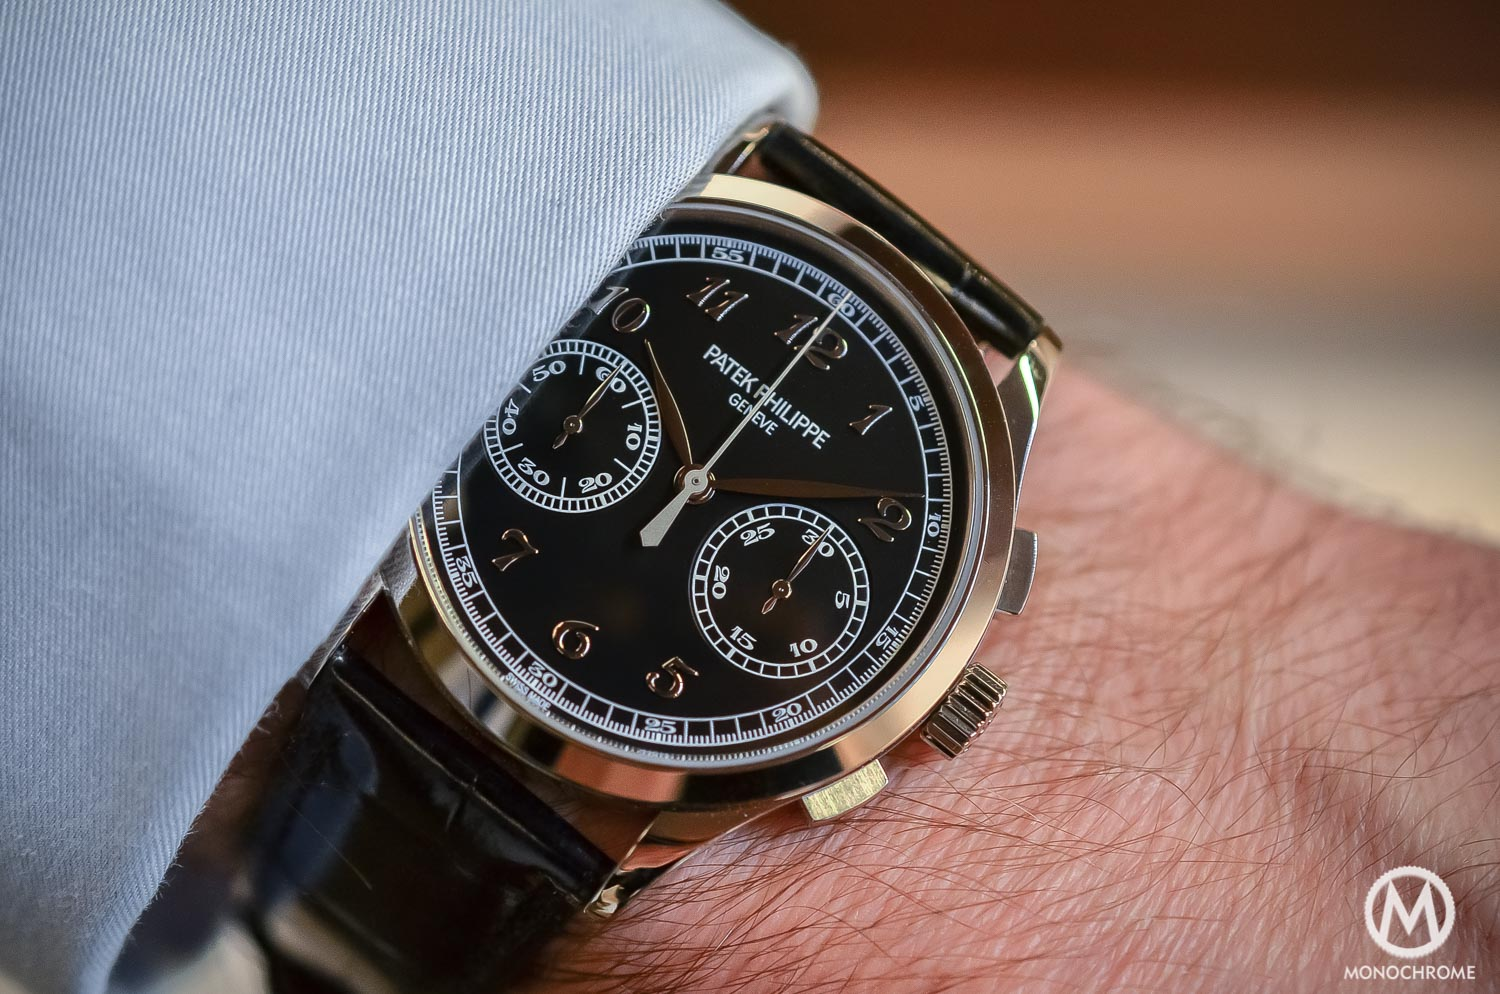 Patek Philippe 5170g-010 Chronograph - review - wristshot